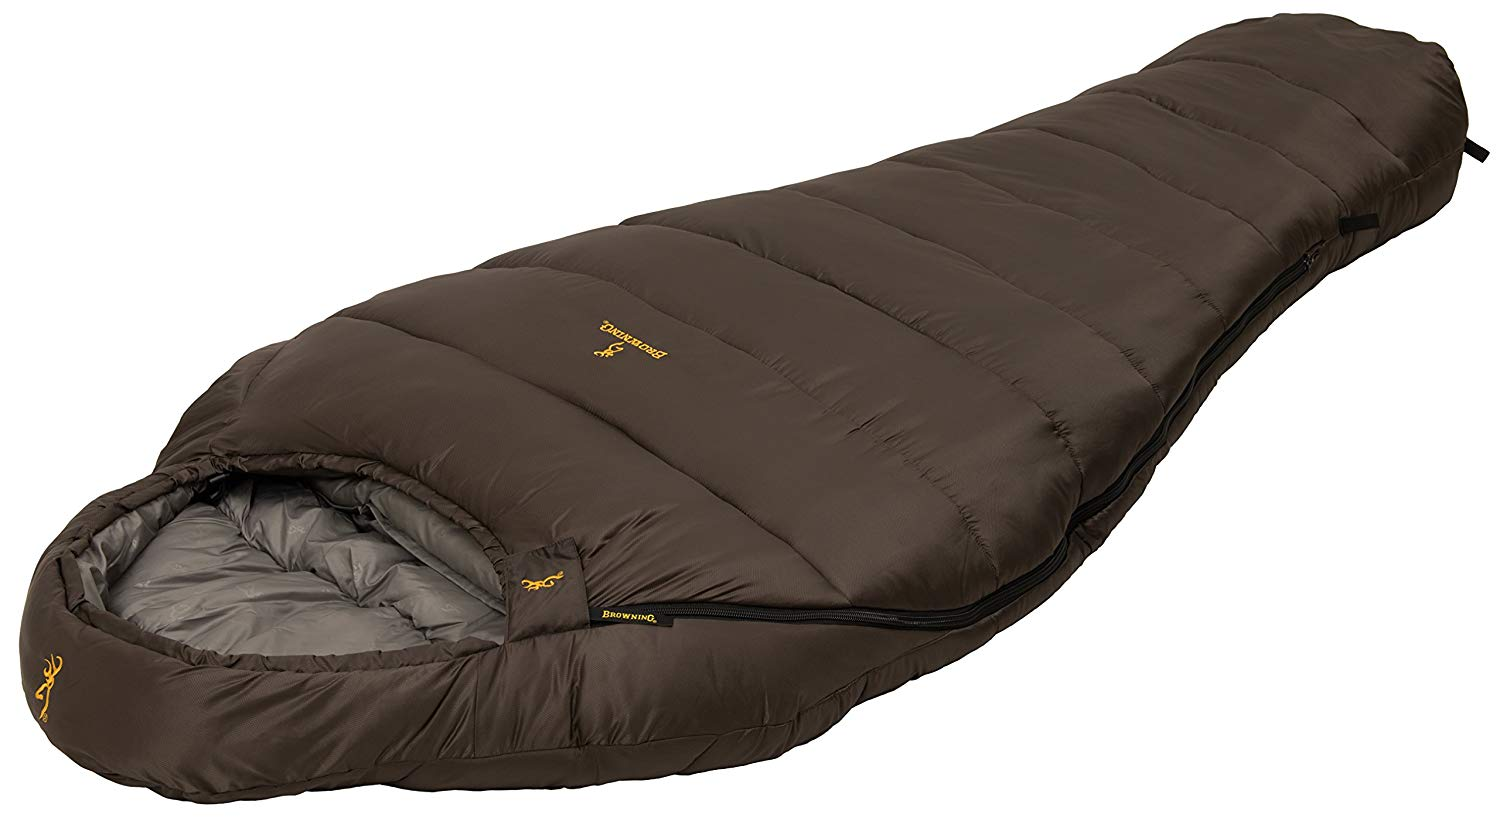 An image of Browning Denali 4857217 0 Degree Sleeping Bag